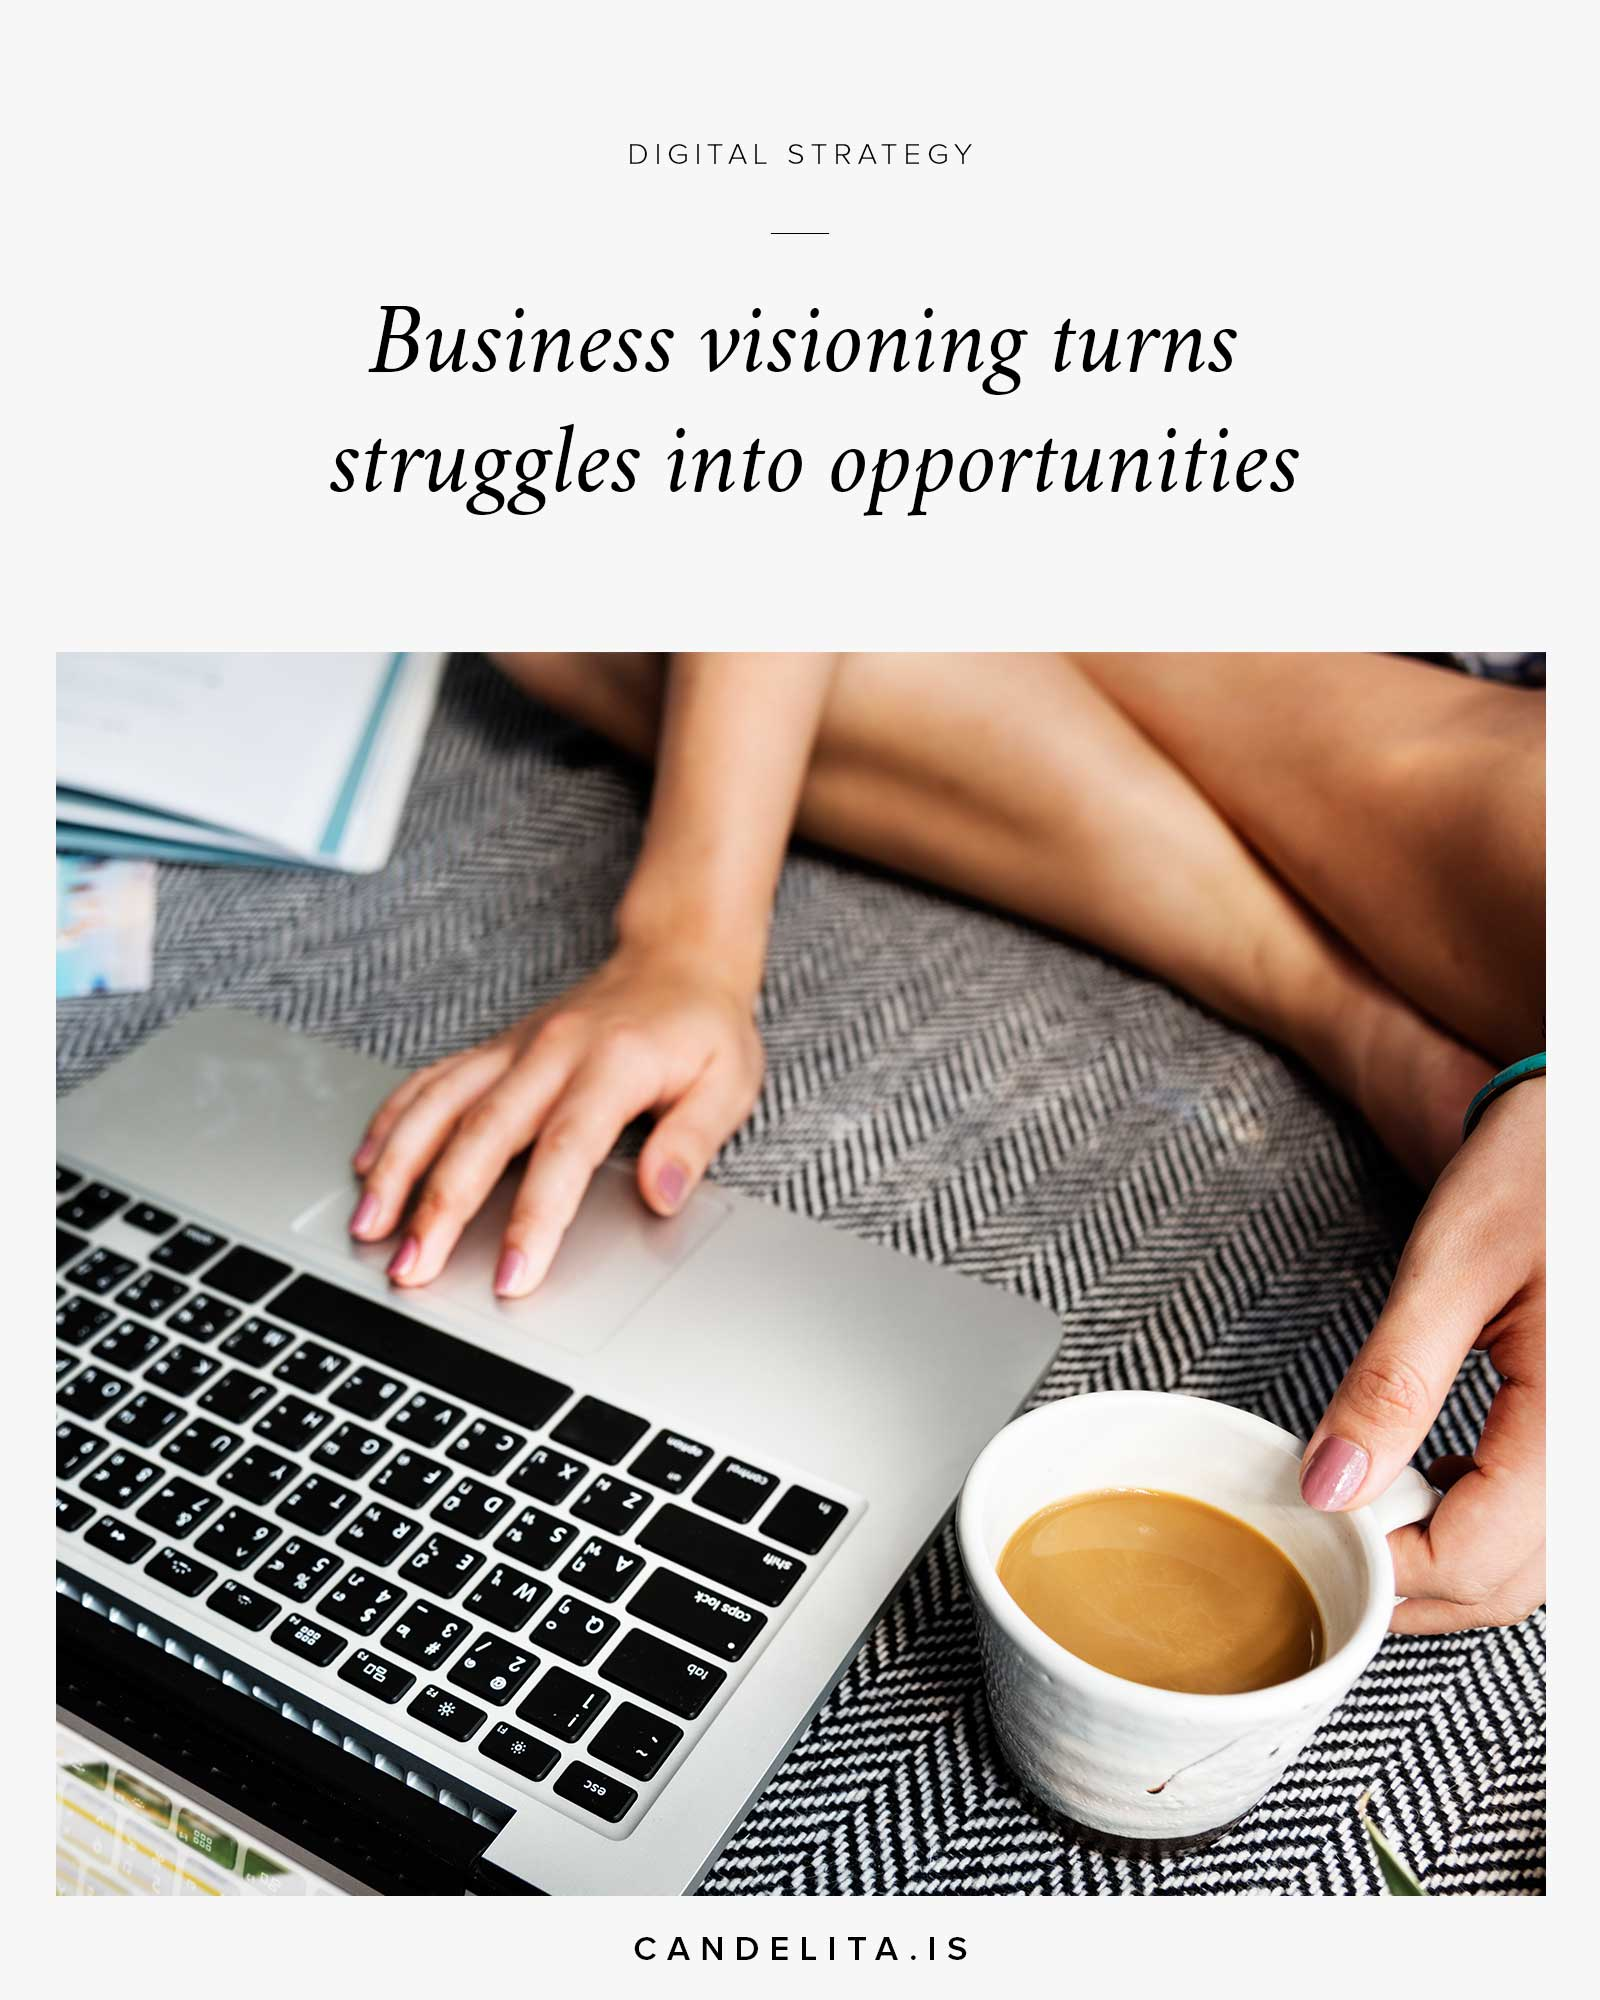 Business visioning turns struggles into opportunities